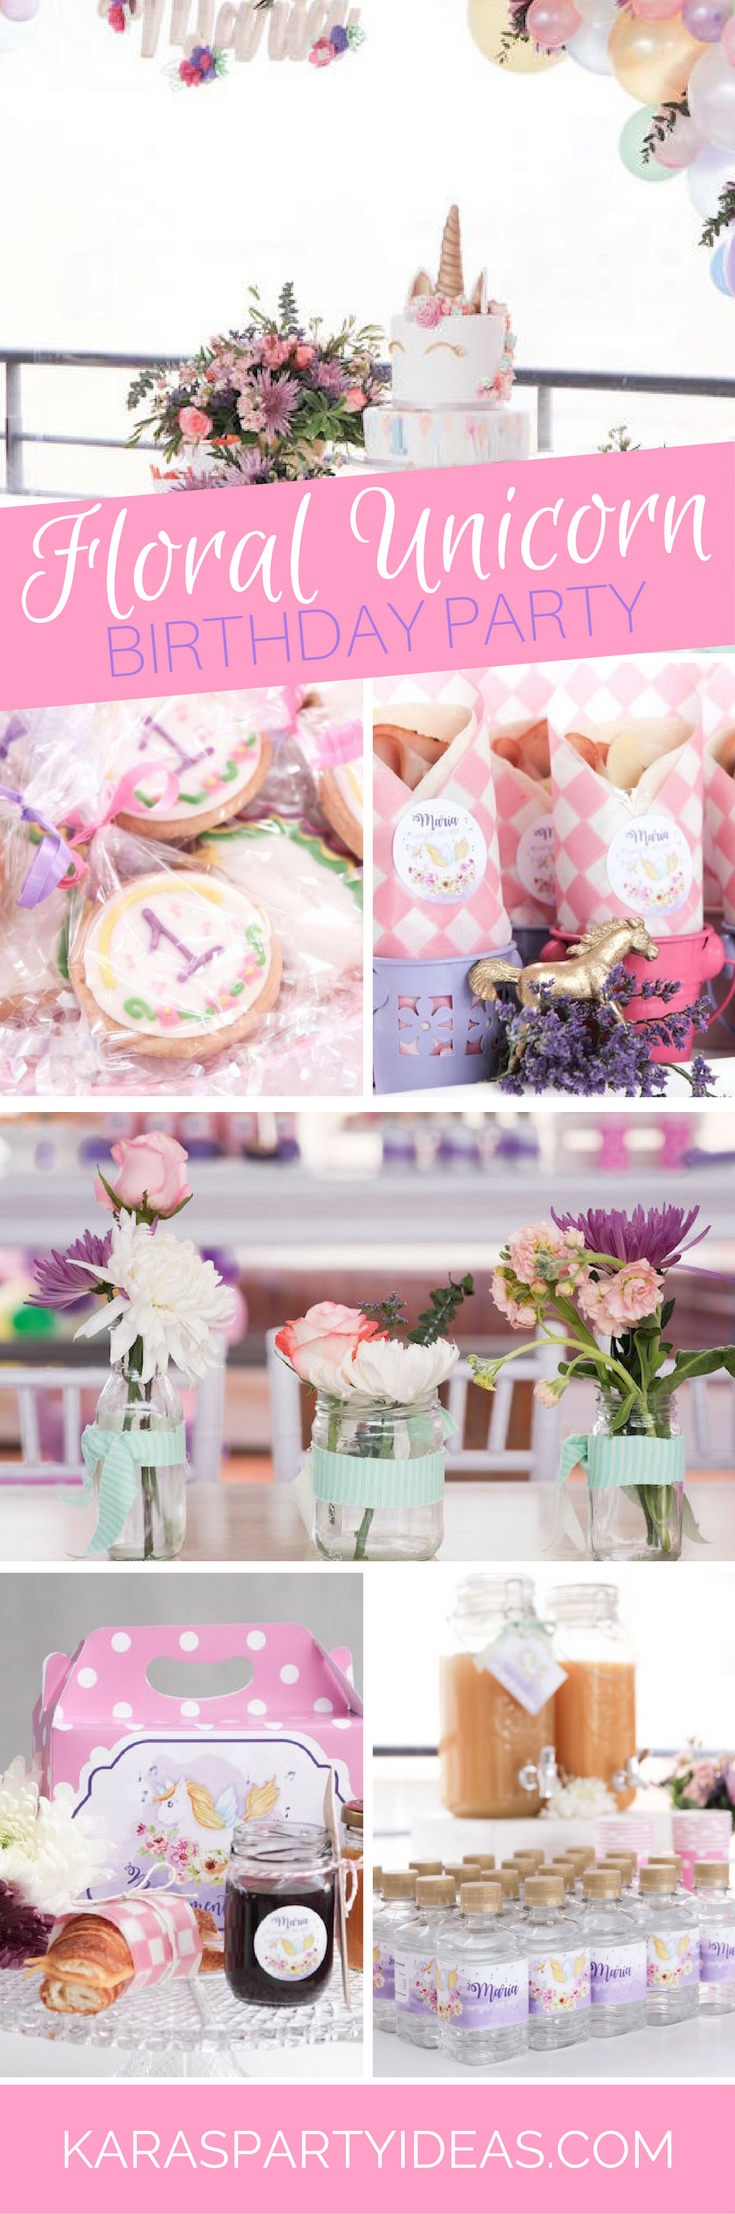 Floral Unicorn Birthday Party via Kara's Party Ideas - KarasPartyIdeas.com